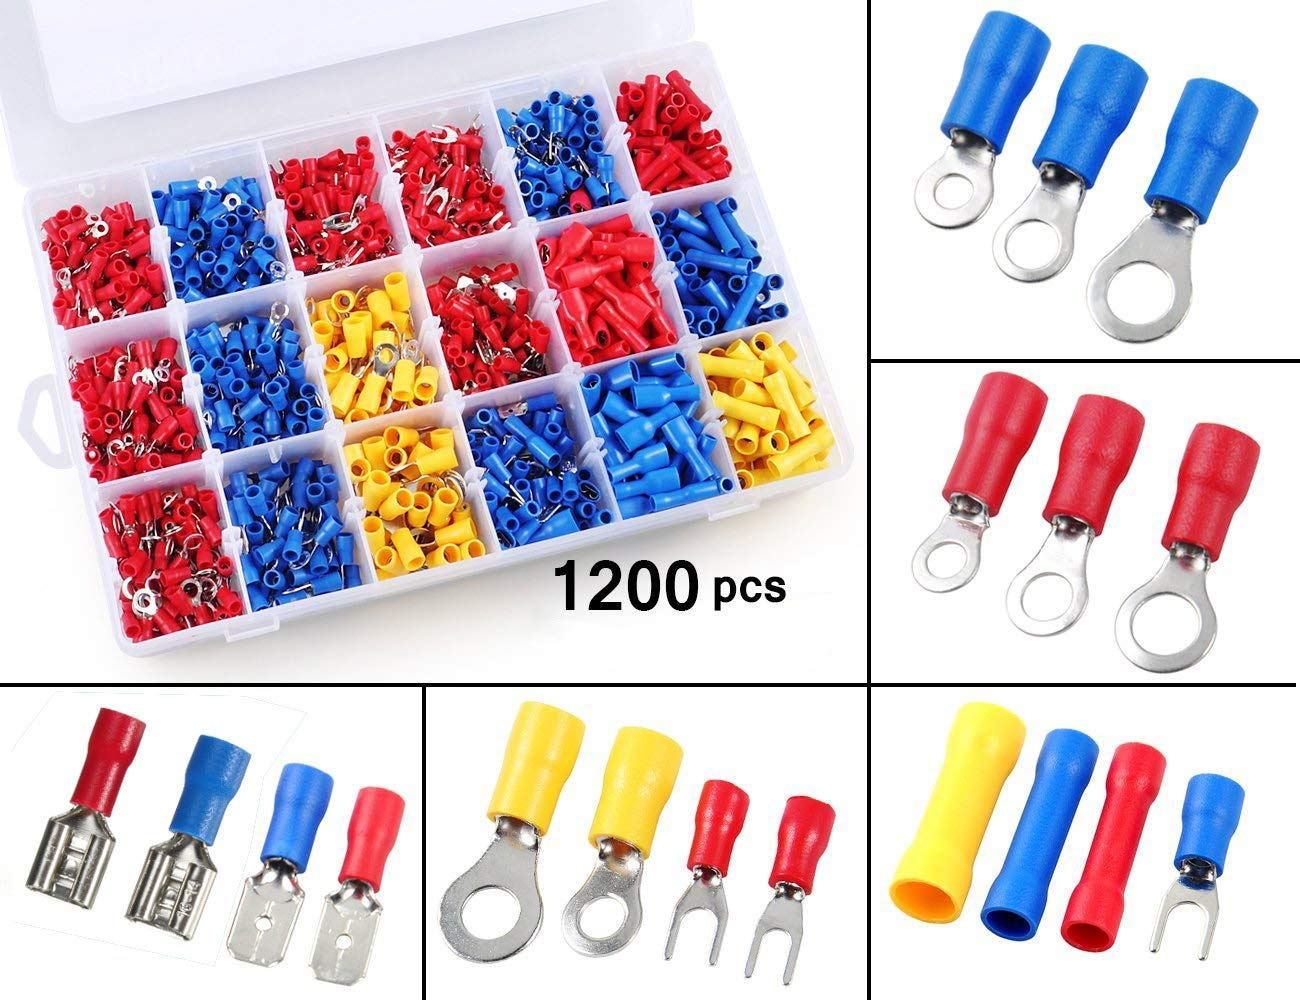 360 Pieces Assorted Auto electrical terminals spade butt bullet fork terminals